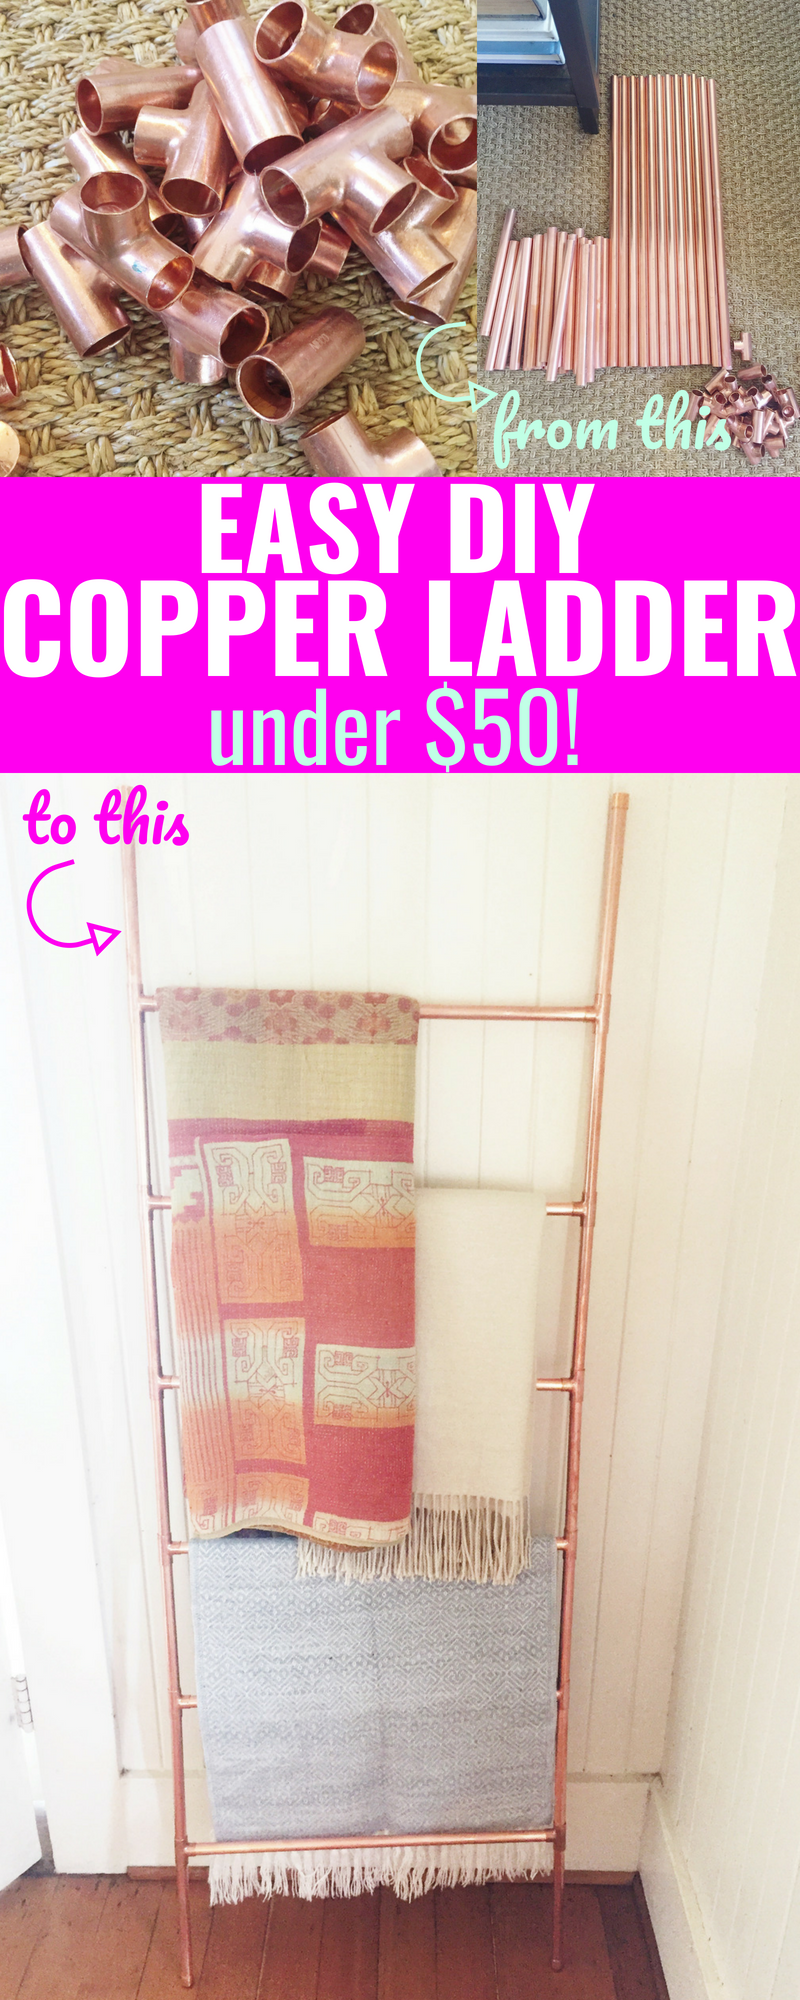 Easy DIY Copper Ladder - Copper Display Ladder - Copper DIY - Copper Ladder Home - Copper Towel Racks - Copper Ladder Display - Easy DIY For Copper Ladder - Cheap Tutorial For Copper Ladder - Communikait by Kait Hanson #copperladder #DIYcopperladder #cheapcopperladder #cheapcopperladdertutorial #copperpipes #copperdecor #homedecor